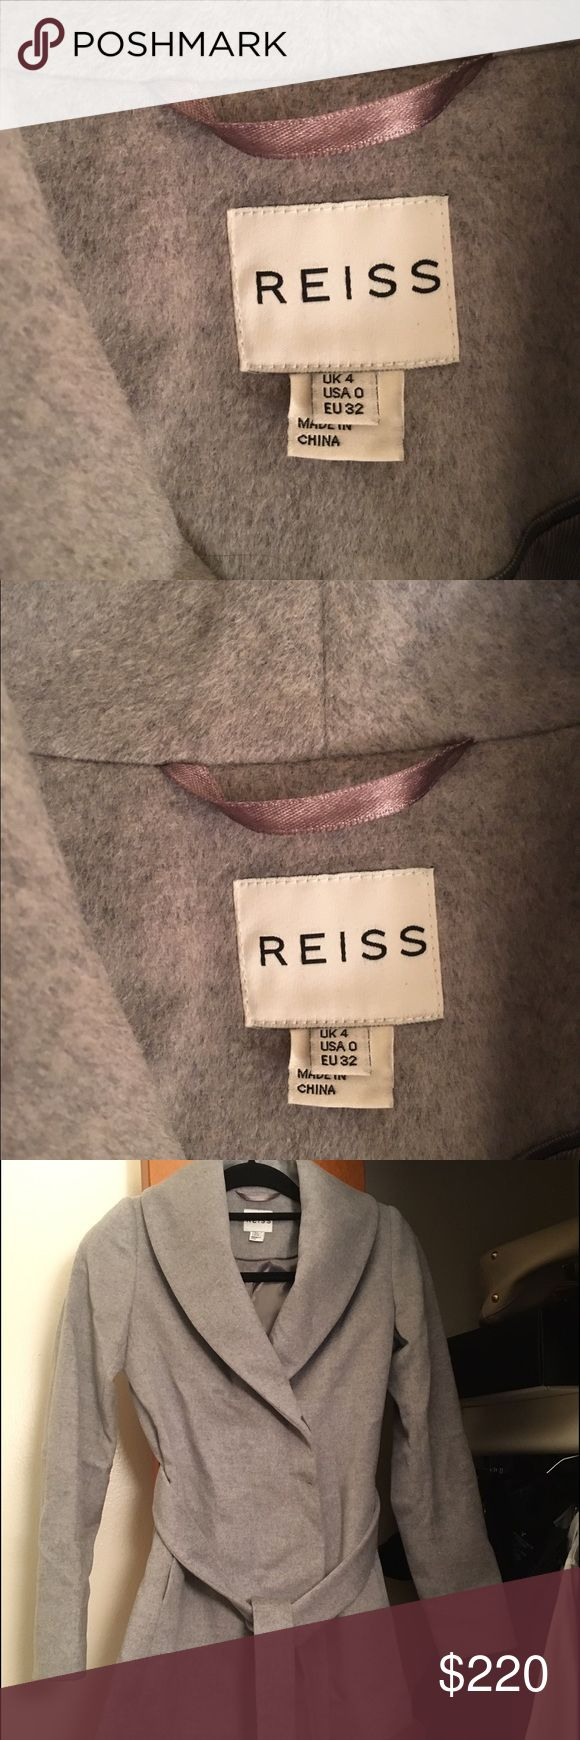 Reiss short coat Reiss 100% wool short coat. Size US 0. Reiss Jackets & Coats